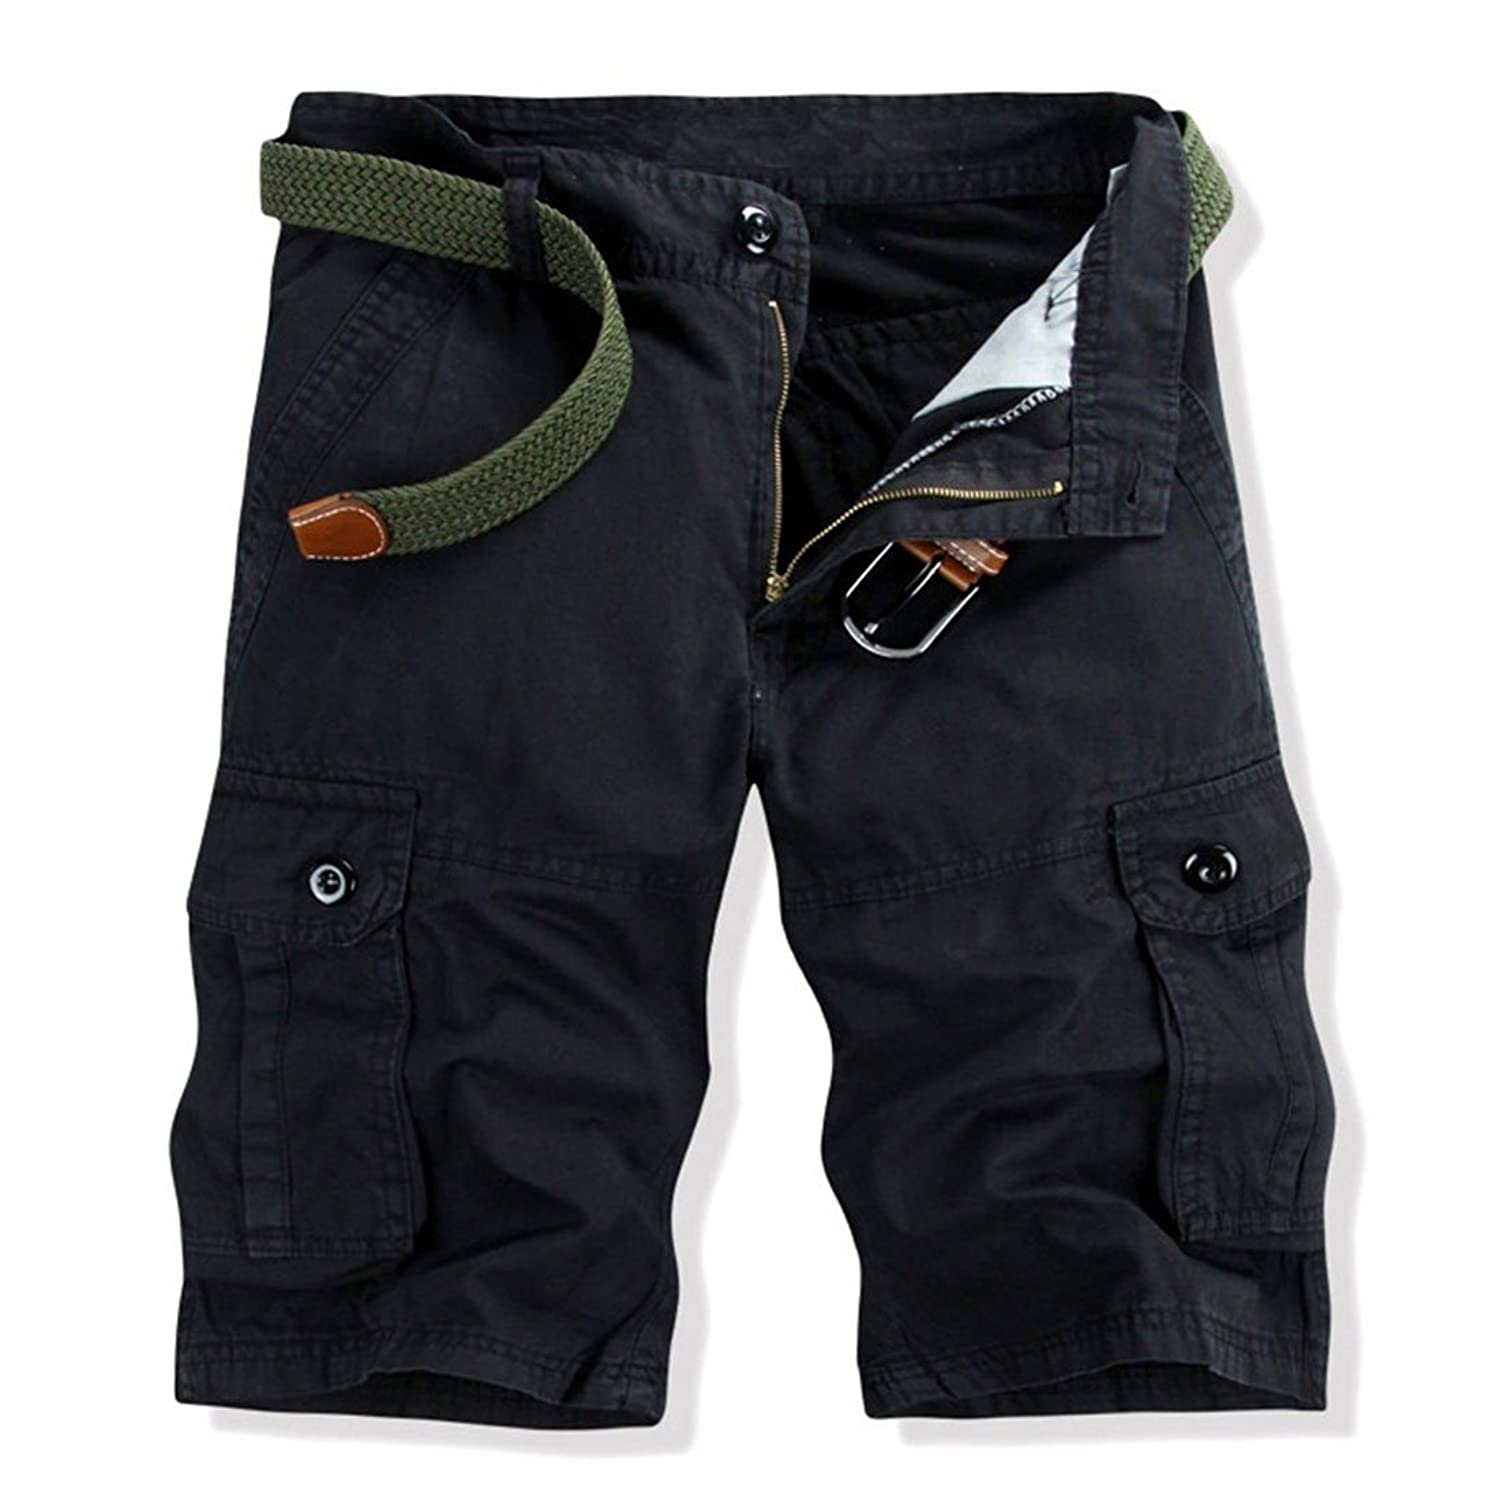 Lastest Men Cotton Pockets Camouflage Overalls Outdoor Army Shorts Fifth Pants